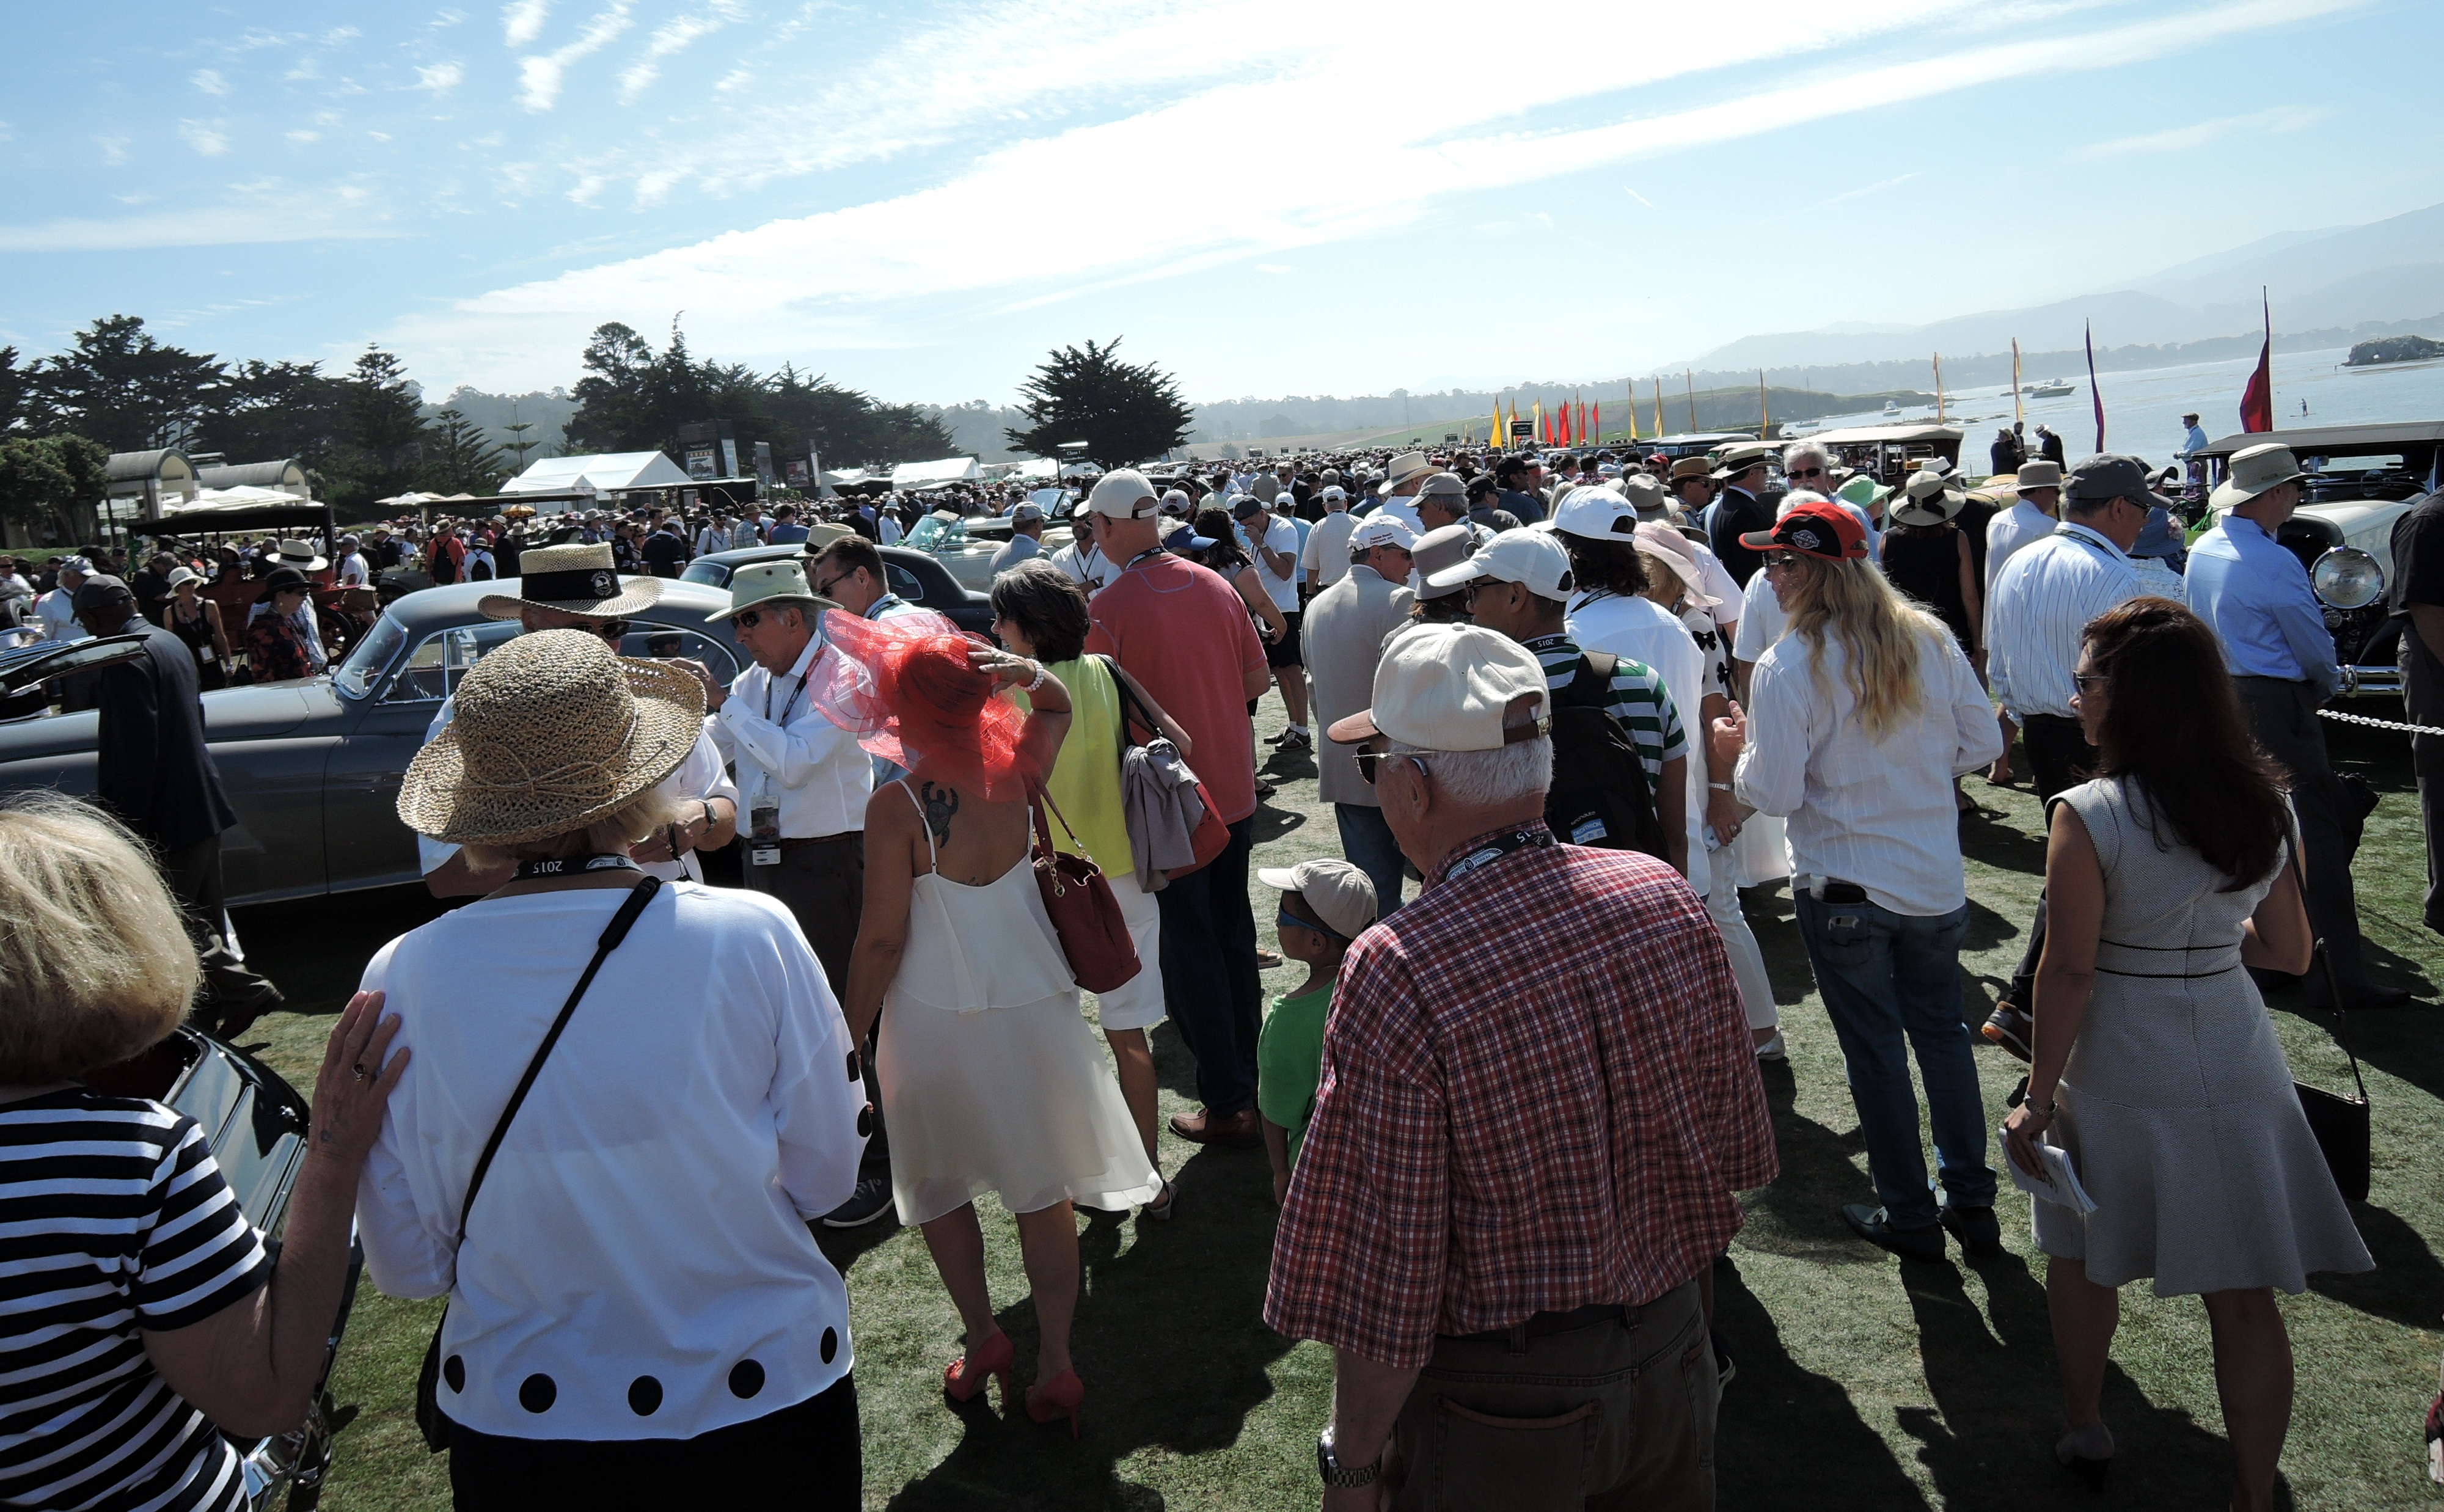 The crowd - concours d'elegance